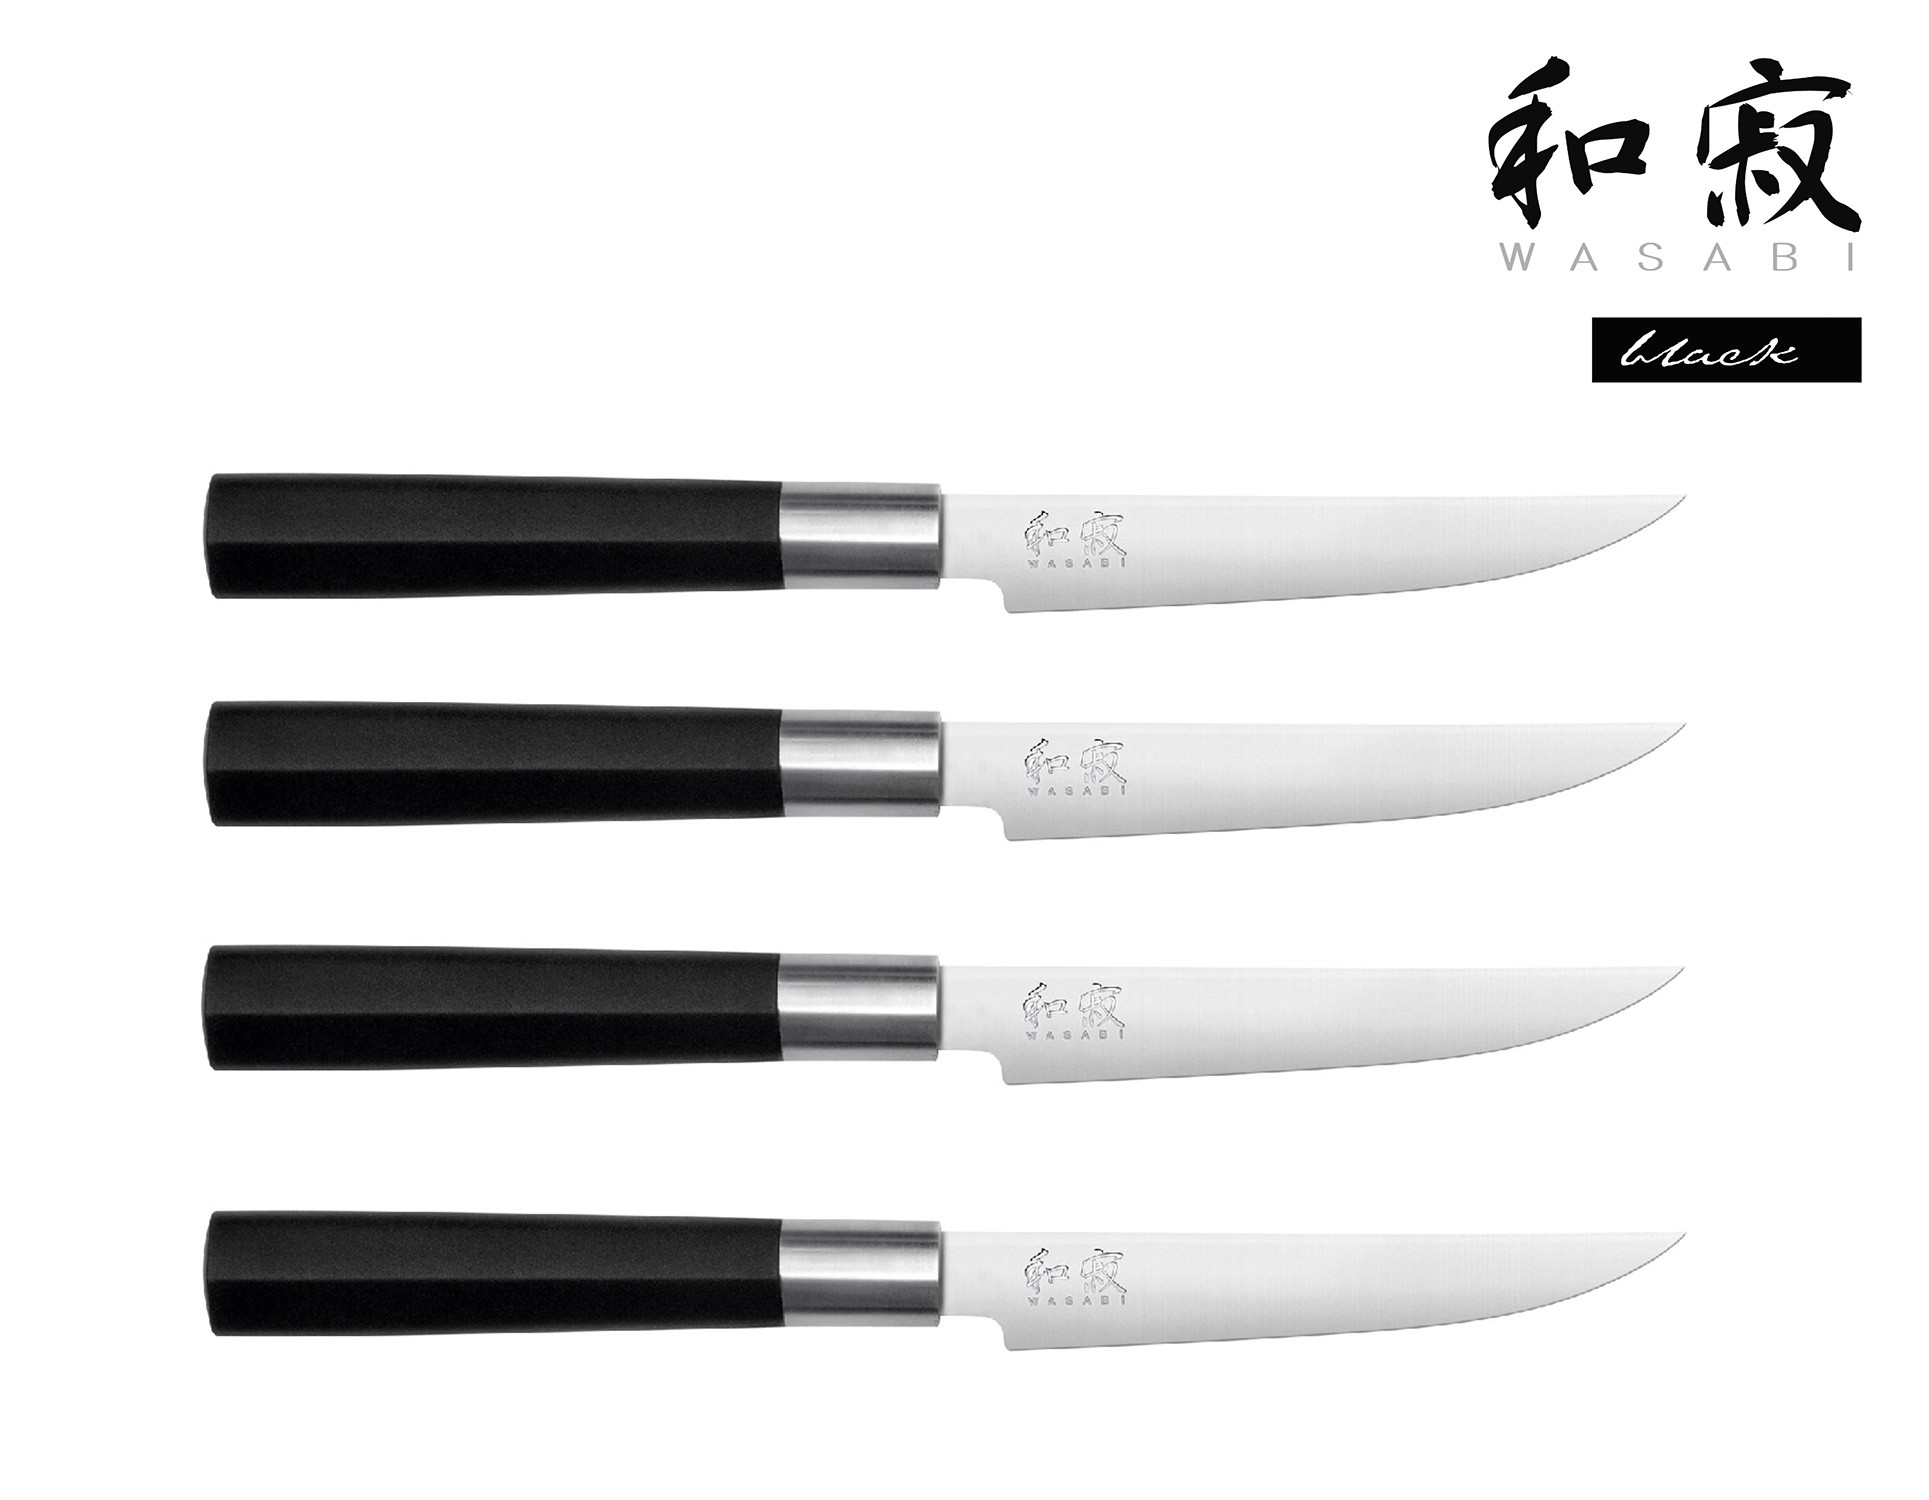 KAI WASABI BLACK Wasabi Black 4er Set Steakmesser